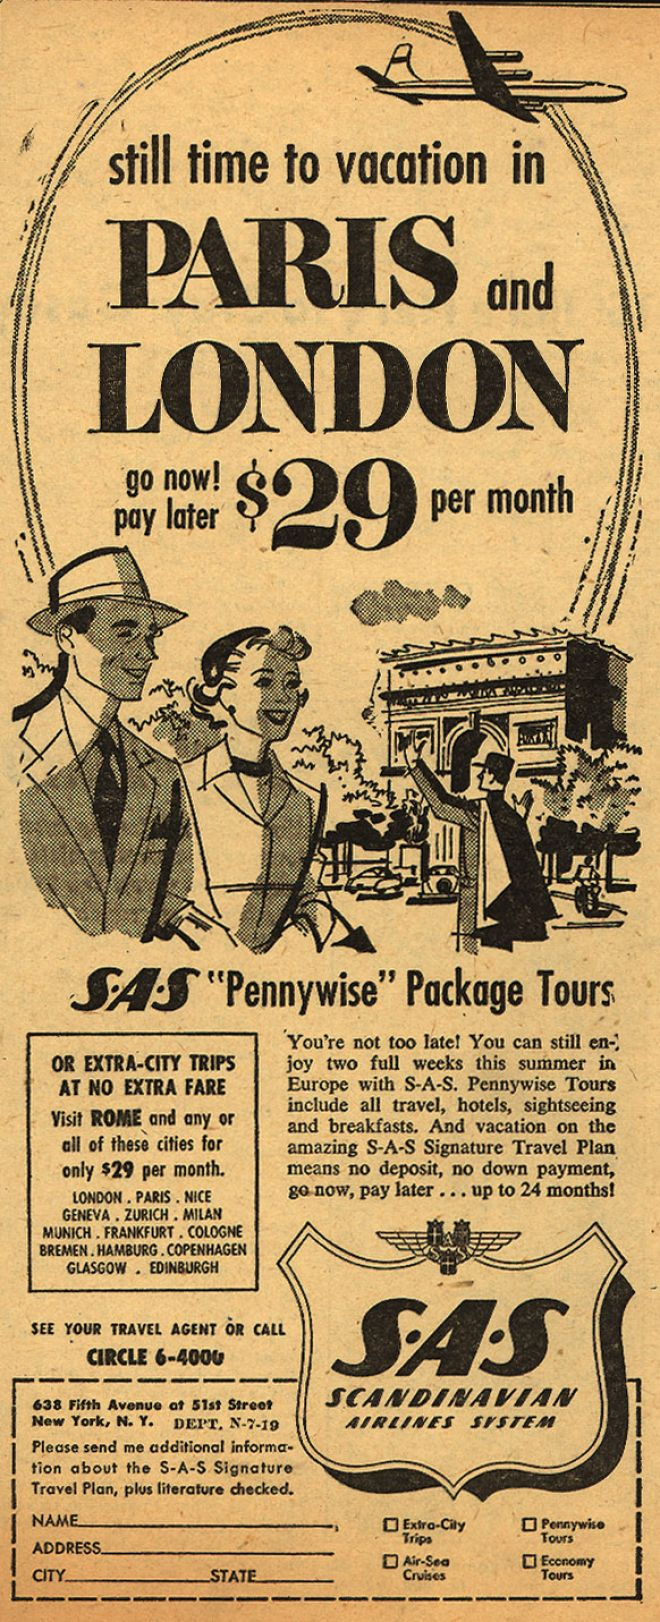 Vintage airlines and aircraft ads of the 1950s page 92 for Travel now pay later vacations